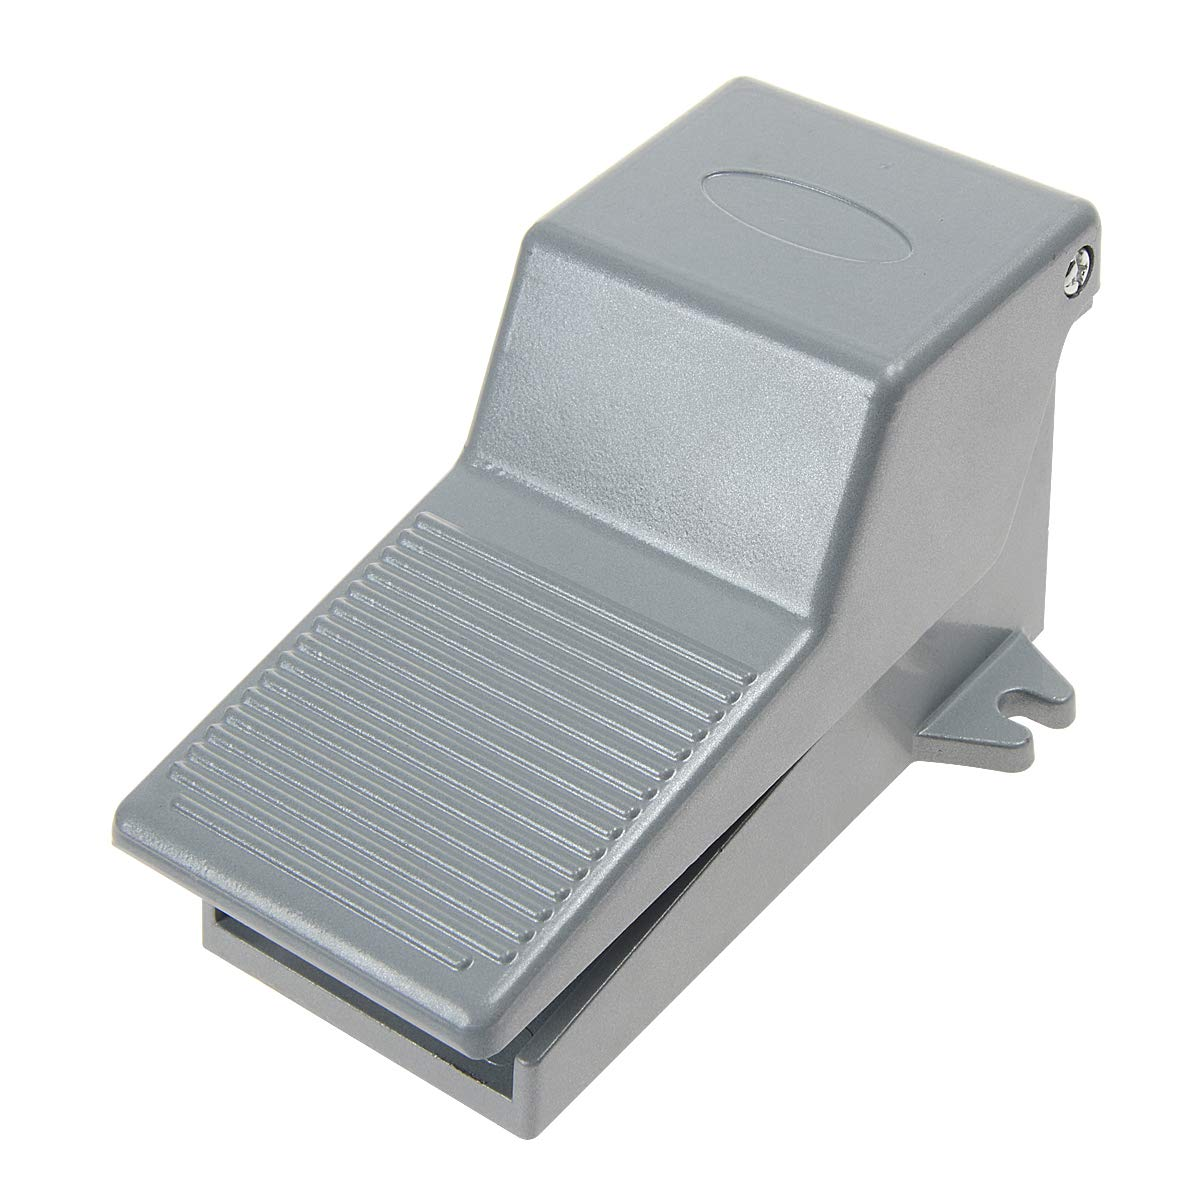 YXQ 2 Position 5 Way Foot Pedal Momentary Pneumatic Valve Control w Protective Cover and Lock Silver Tone Air Switch